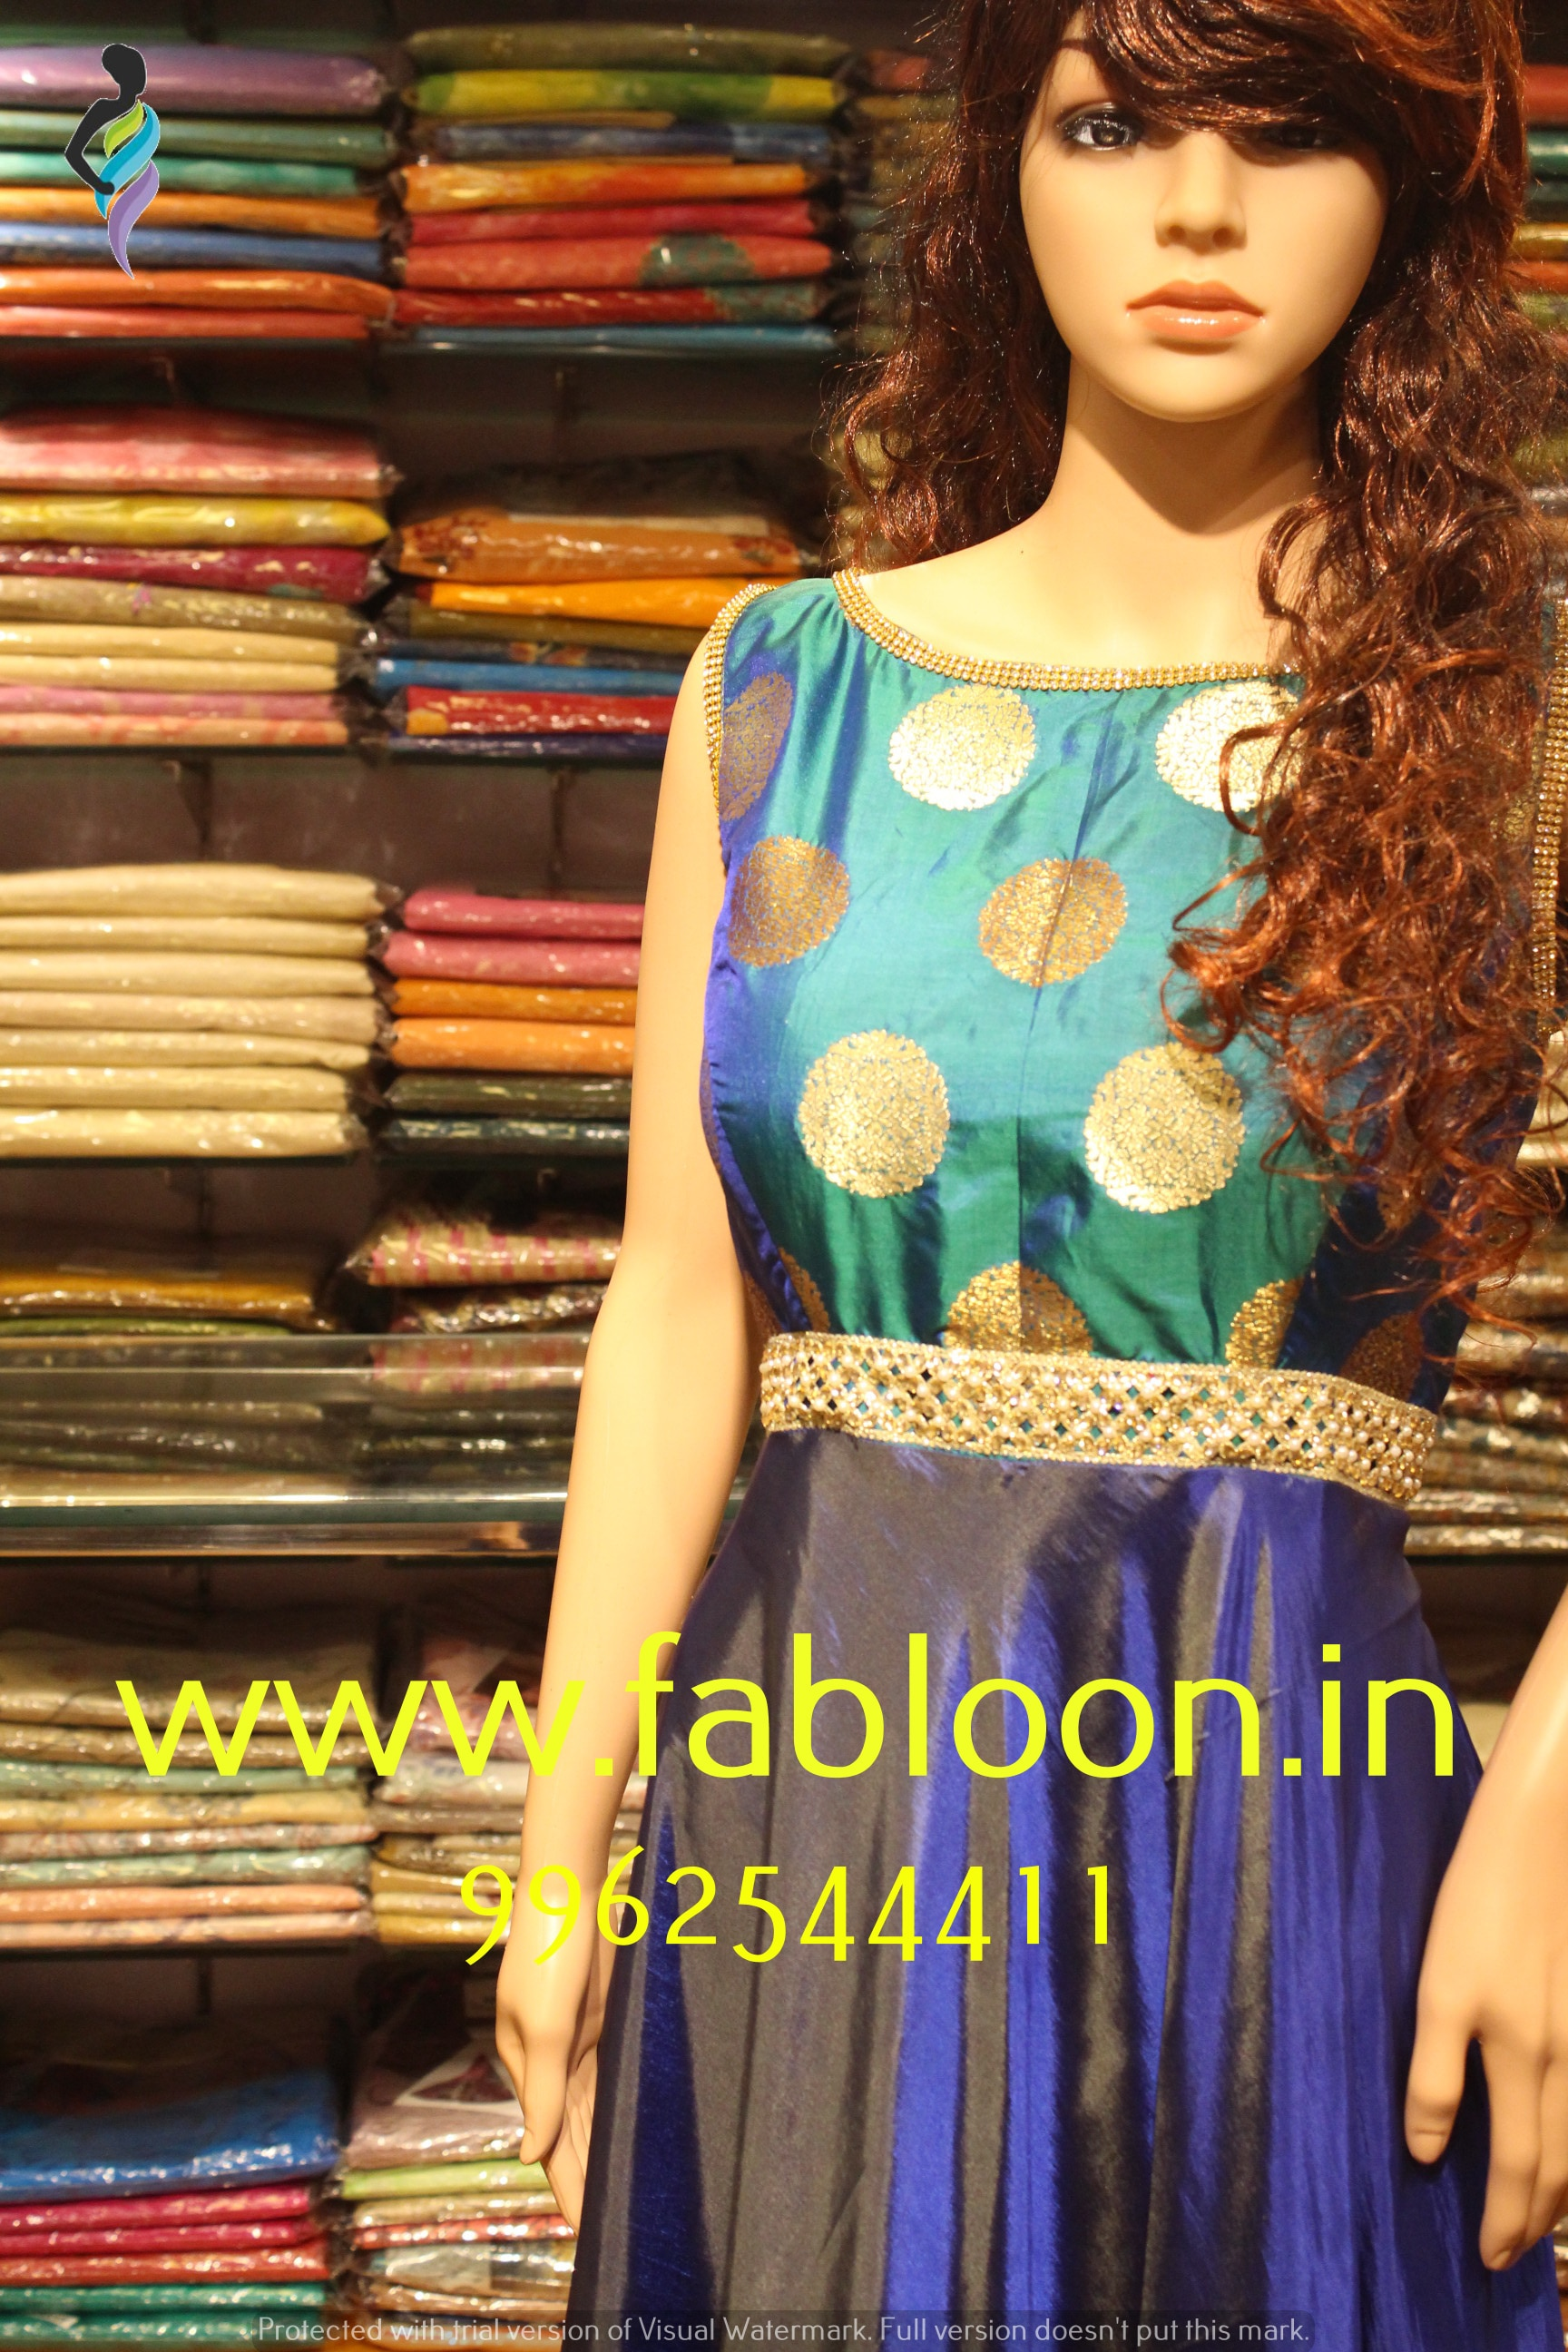 Women's Boutique In Chennai.  New Style Blouse Designs At Fabloon Designer For Latest Blouse In Vadapalani, Mob: +91 9962544411, 044 48644411.  Cheap Boutiques. Boutique Shop. Boutique Shopping. Women's Clothing Boutique.